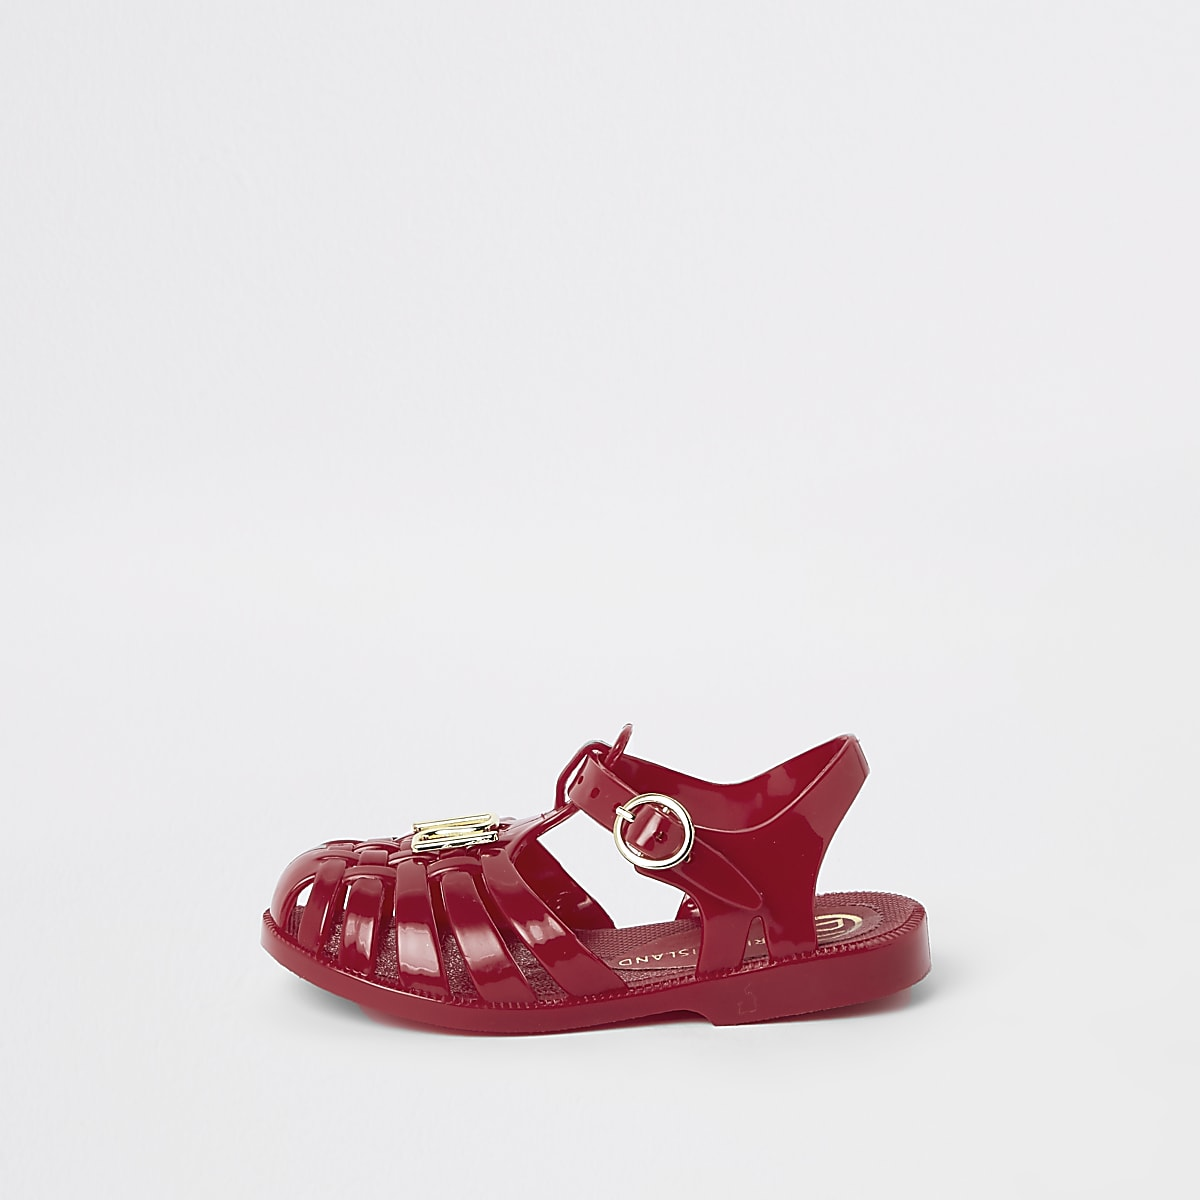 860724d08a64 Mini girls red caged jelly sandals - Baby Girls Sandals - Baby Girls Shoes    Boots - Mini Girls - girls